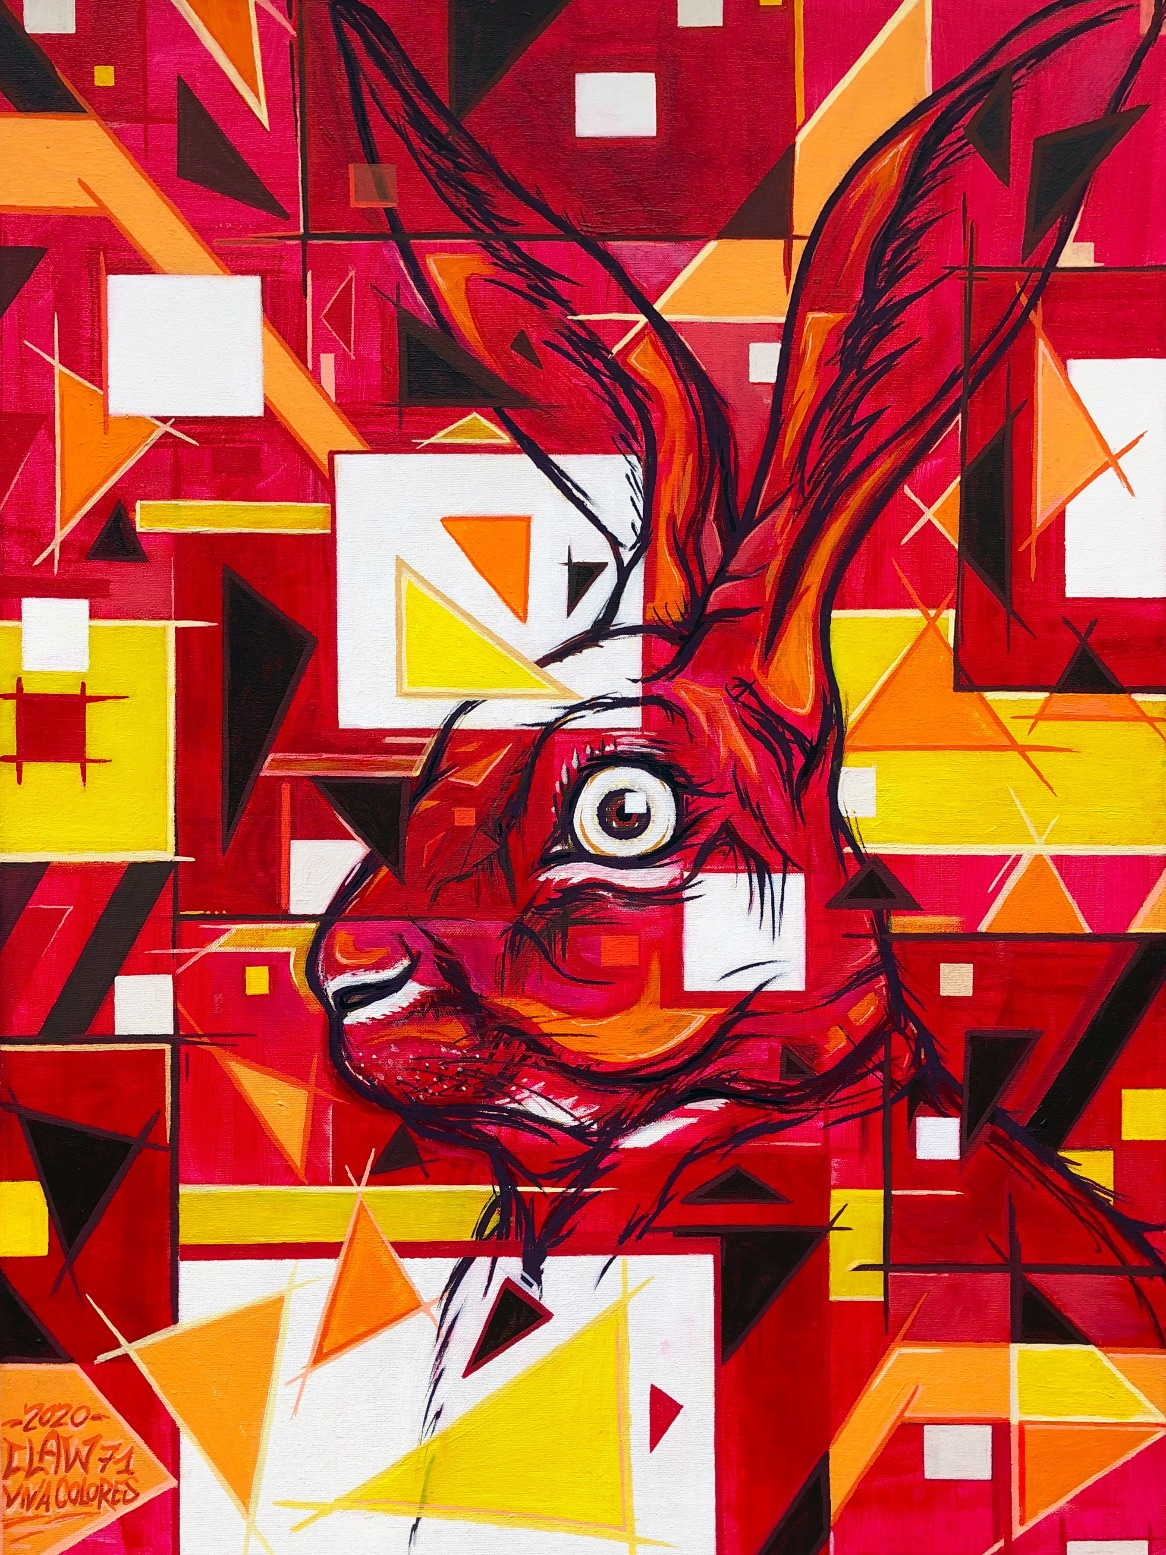 artigall: Rabbit-Resolution Kunstwerk Detailansicht